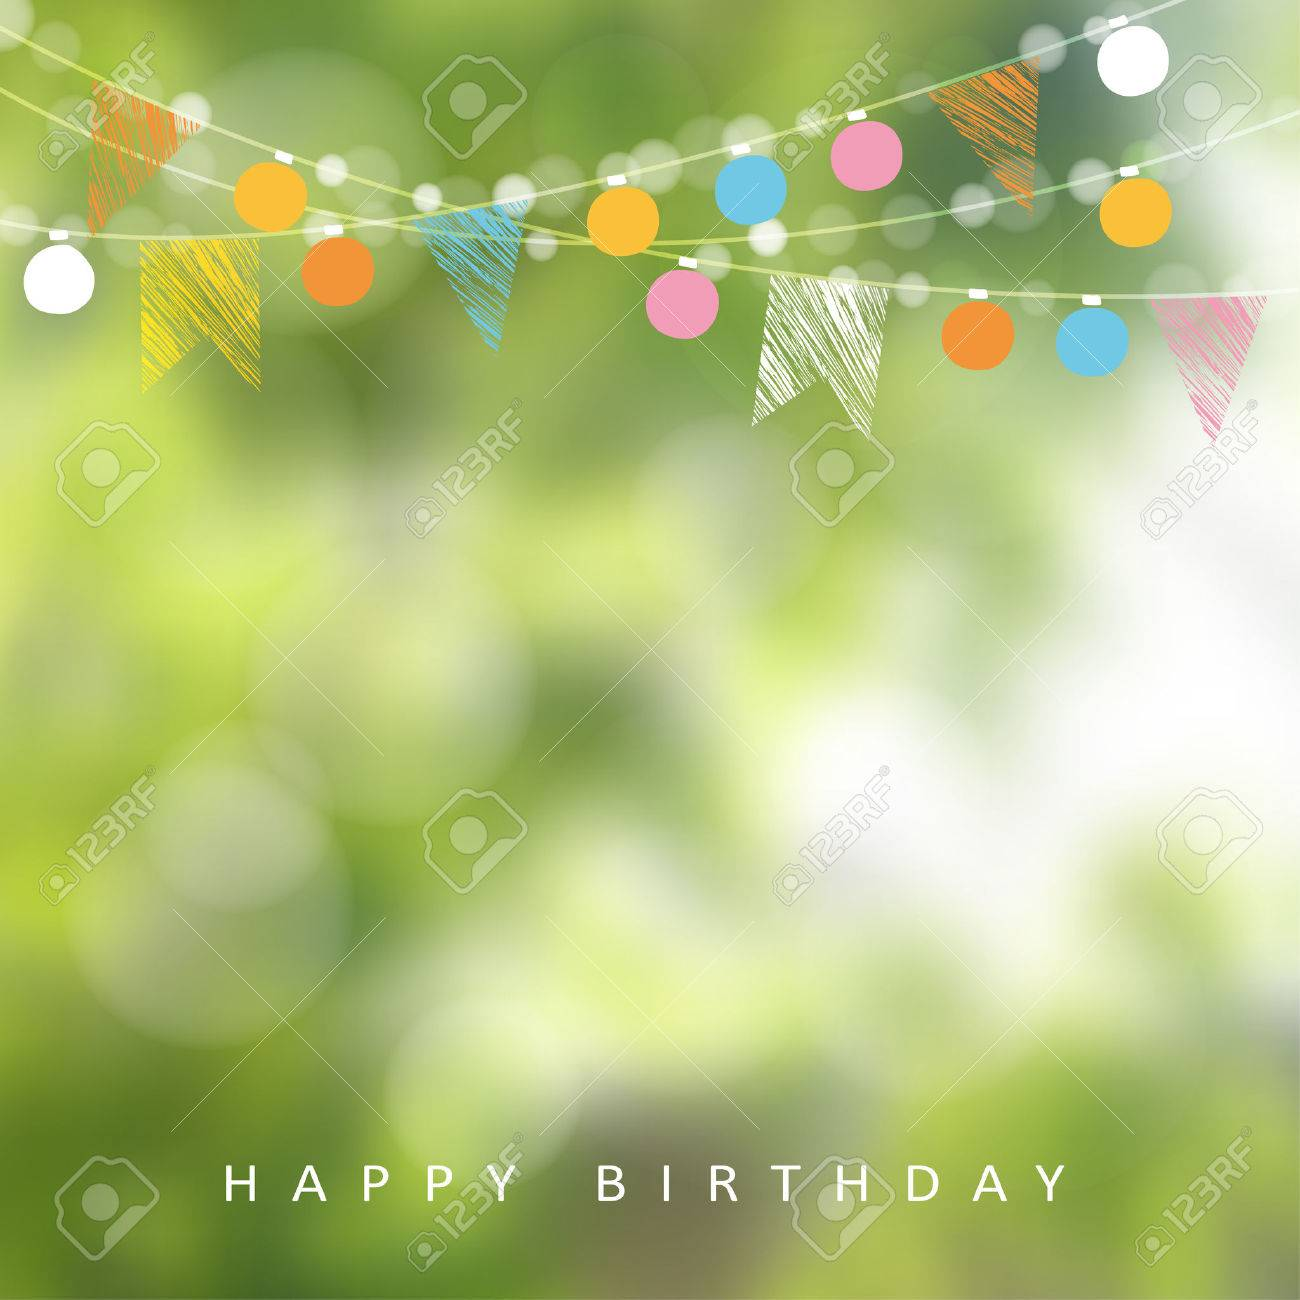 Birthday garden party or Brazilian june party, illustration with garland of lights, party flags and blurred background - 53580285